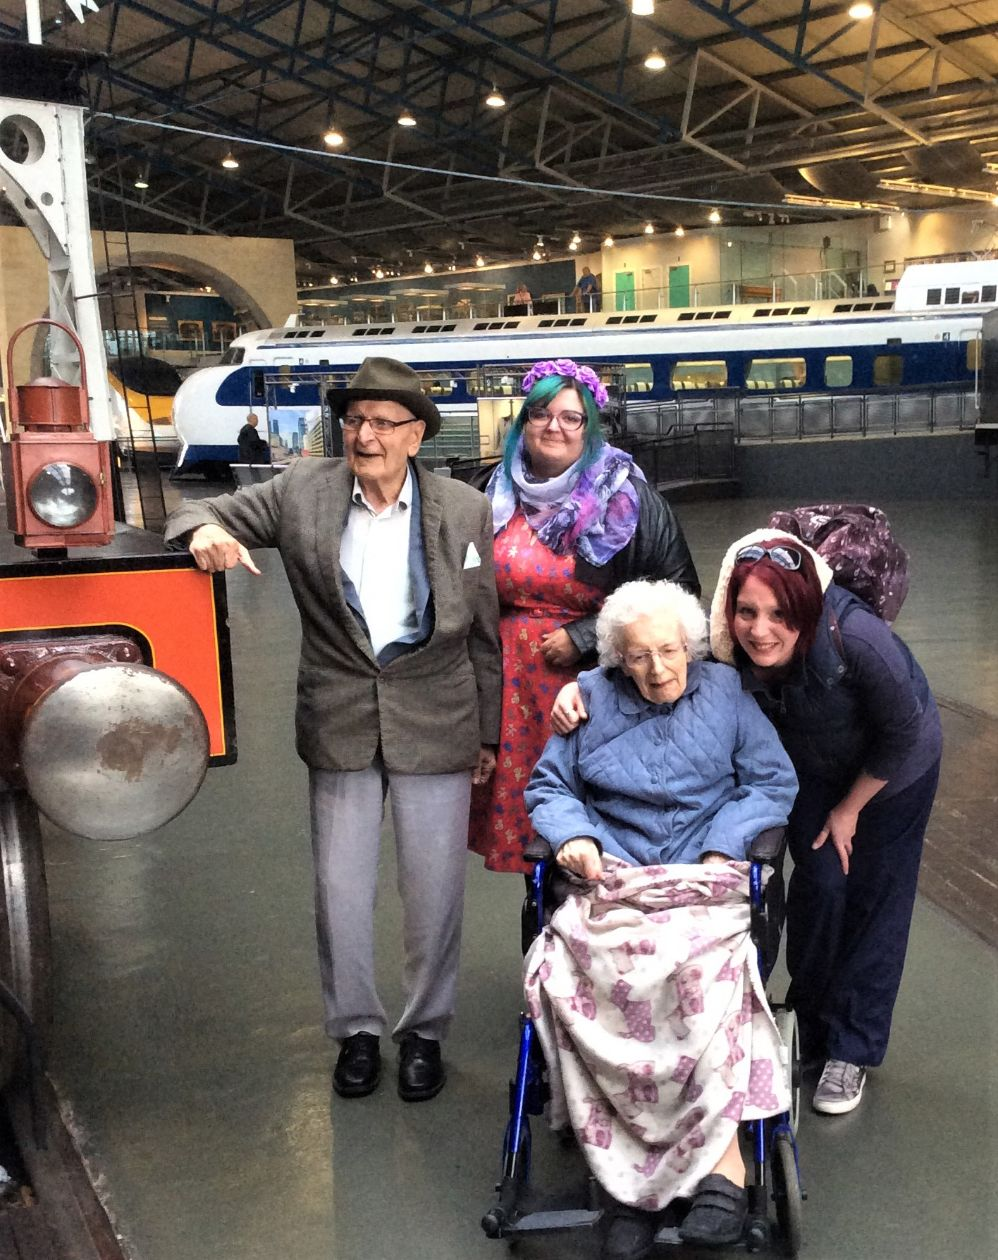 Leeming Bar Grange Care home in North Yorkshire took a trip to the National Railway Museum in York